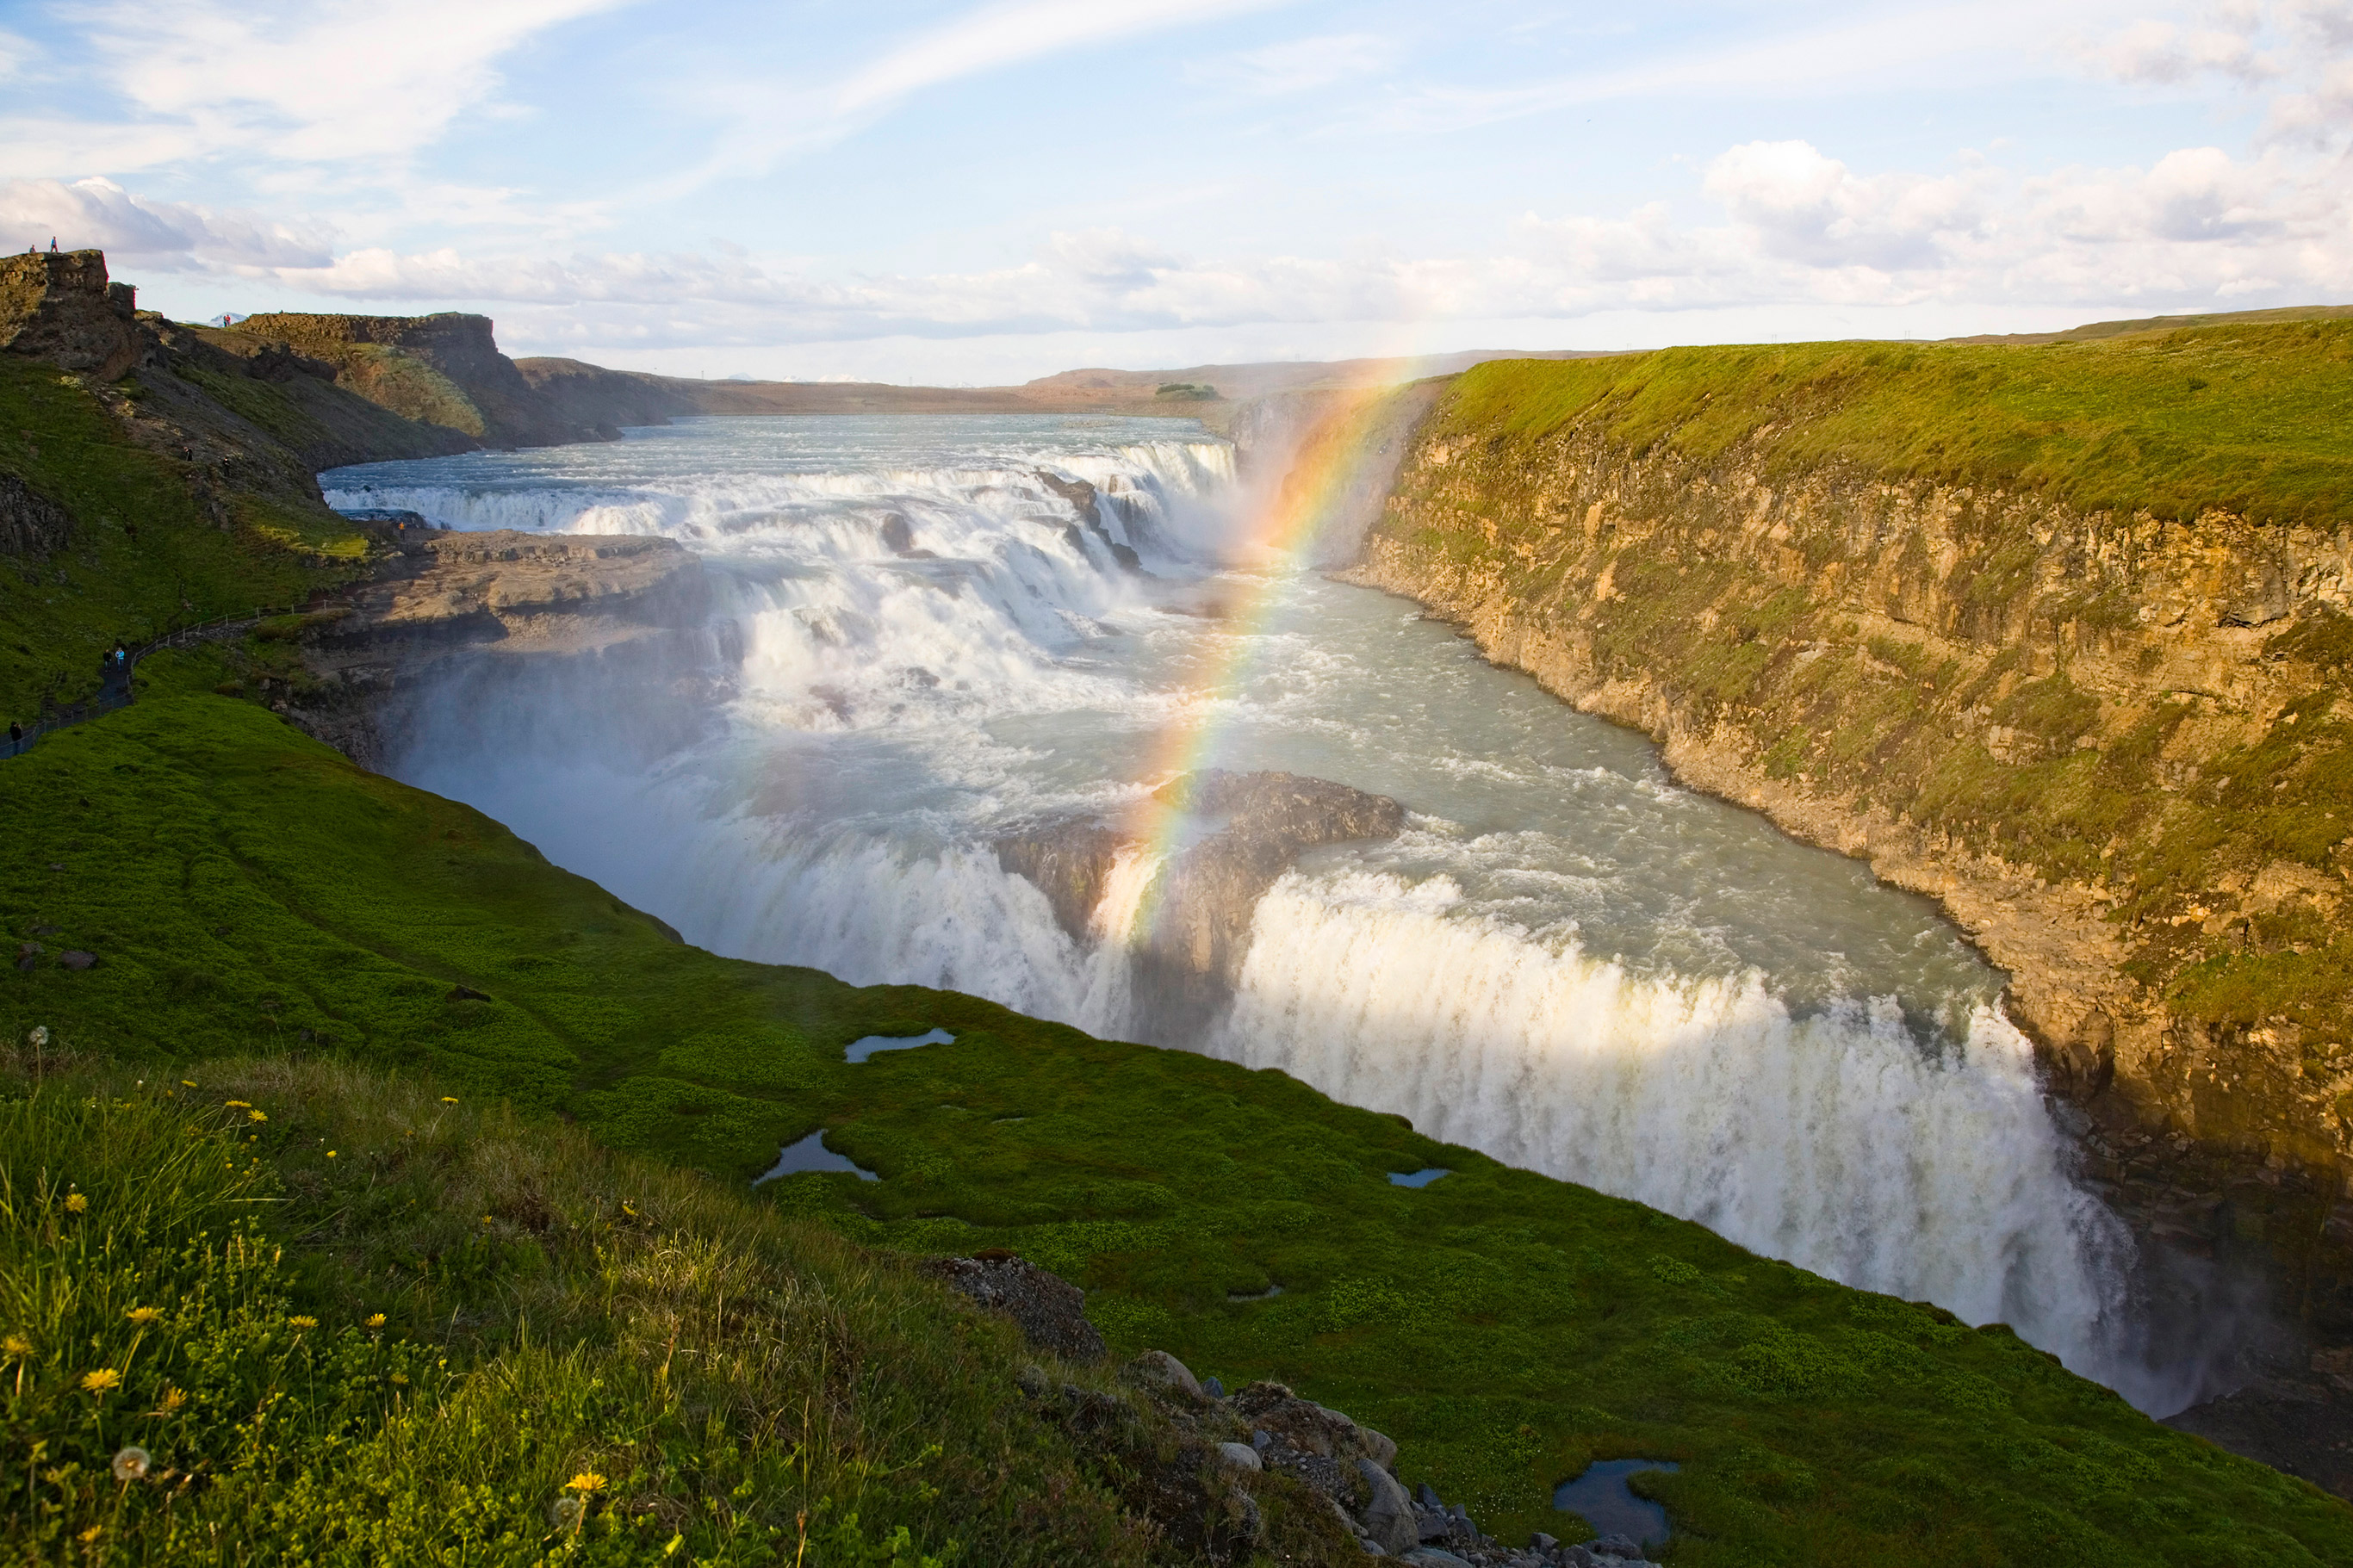 The might Gullfoss Falls typify Iceland's landscape.